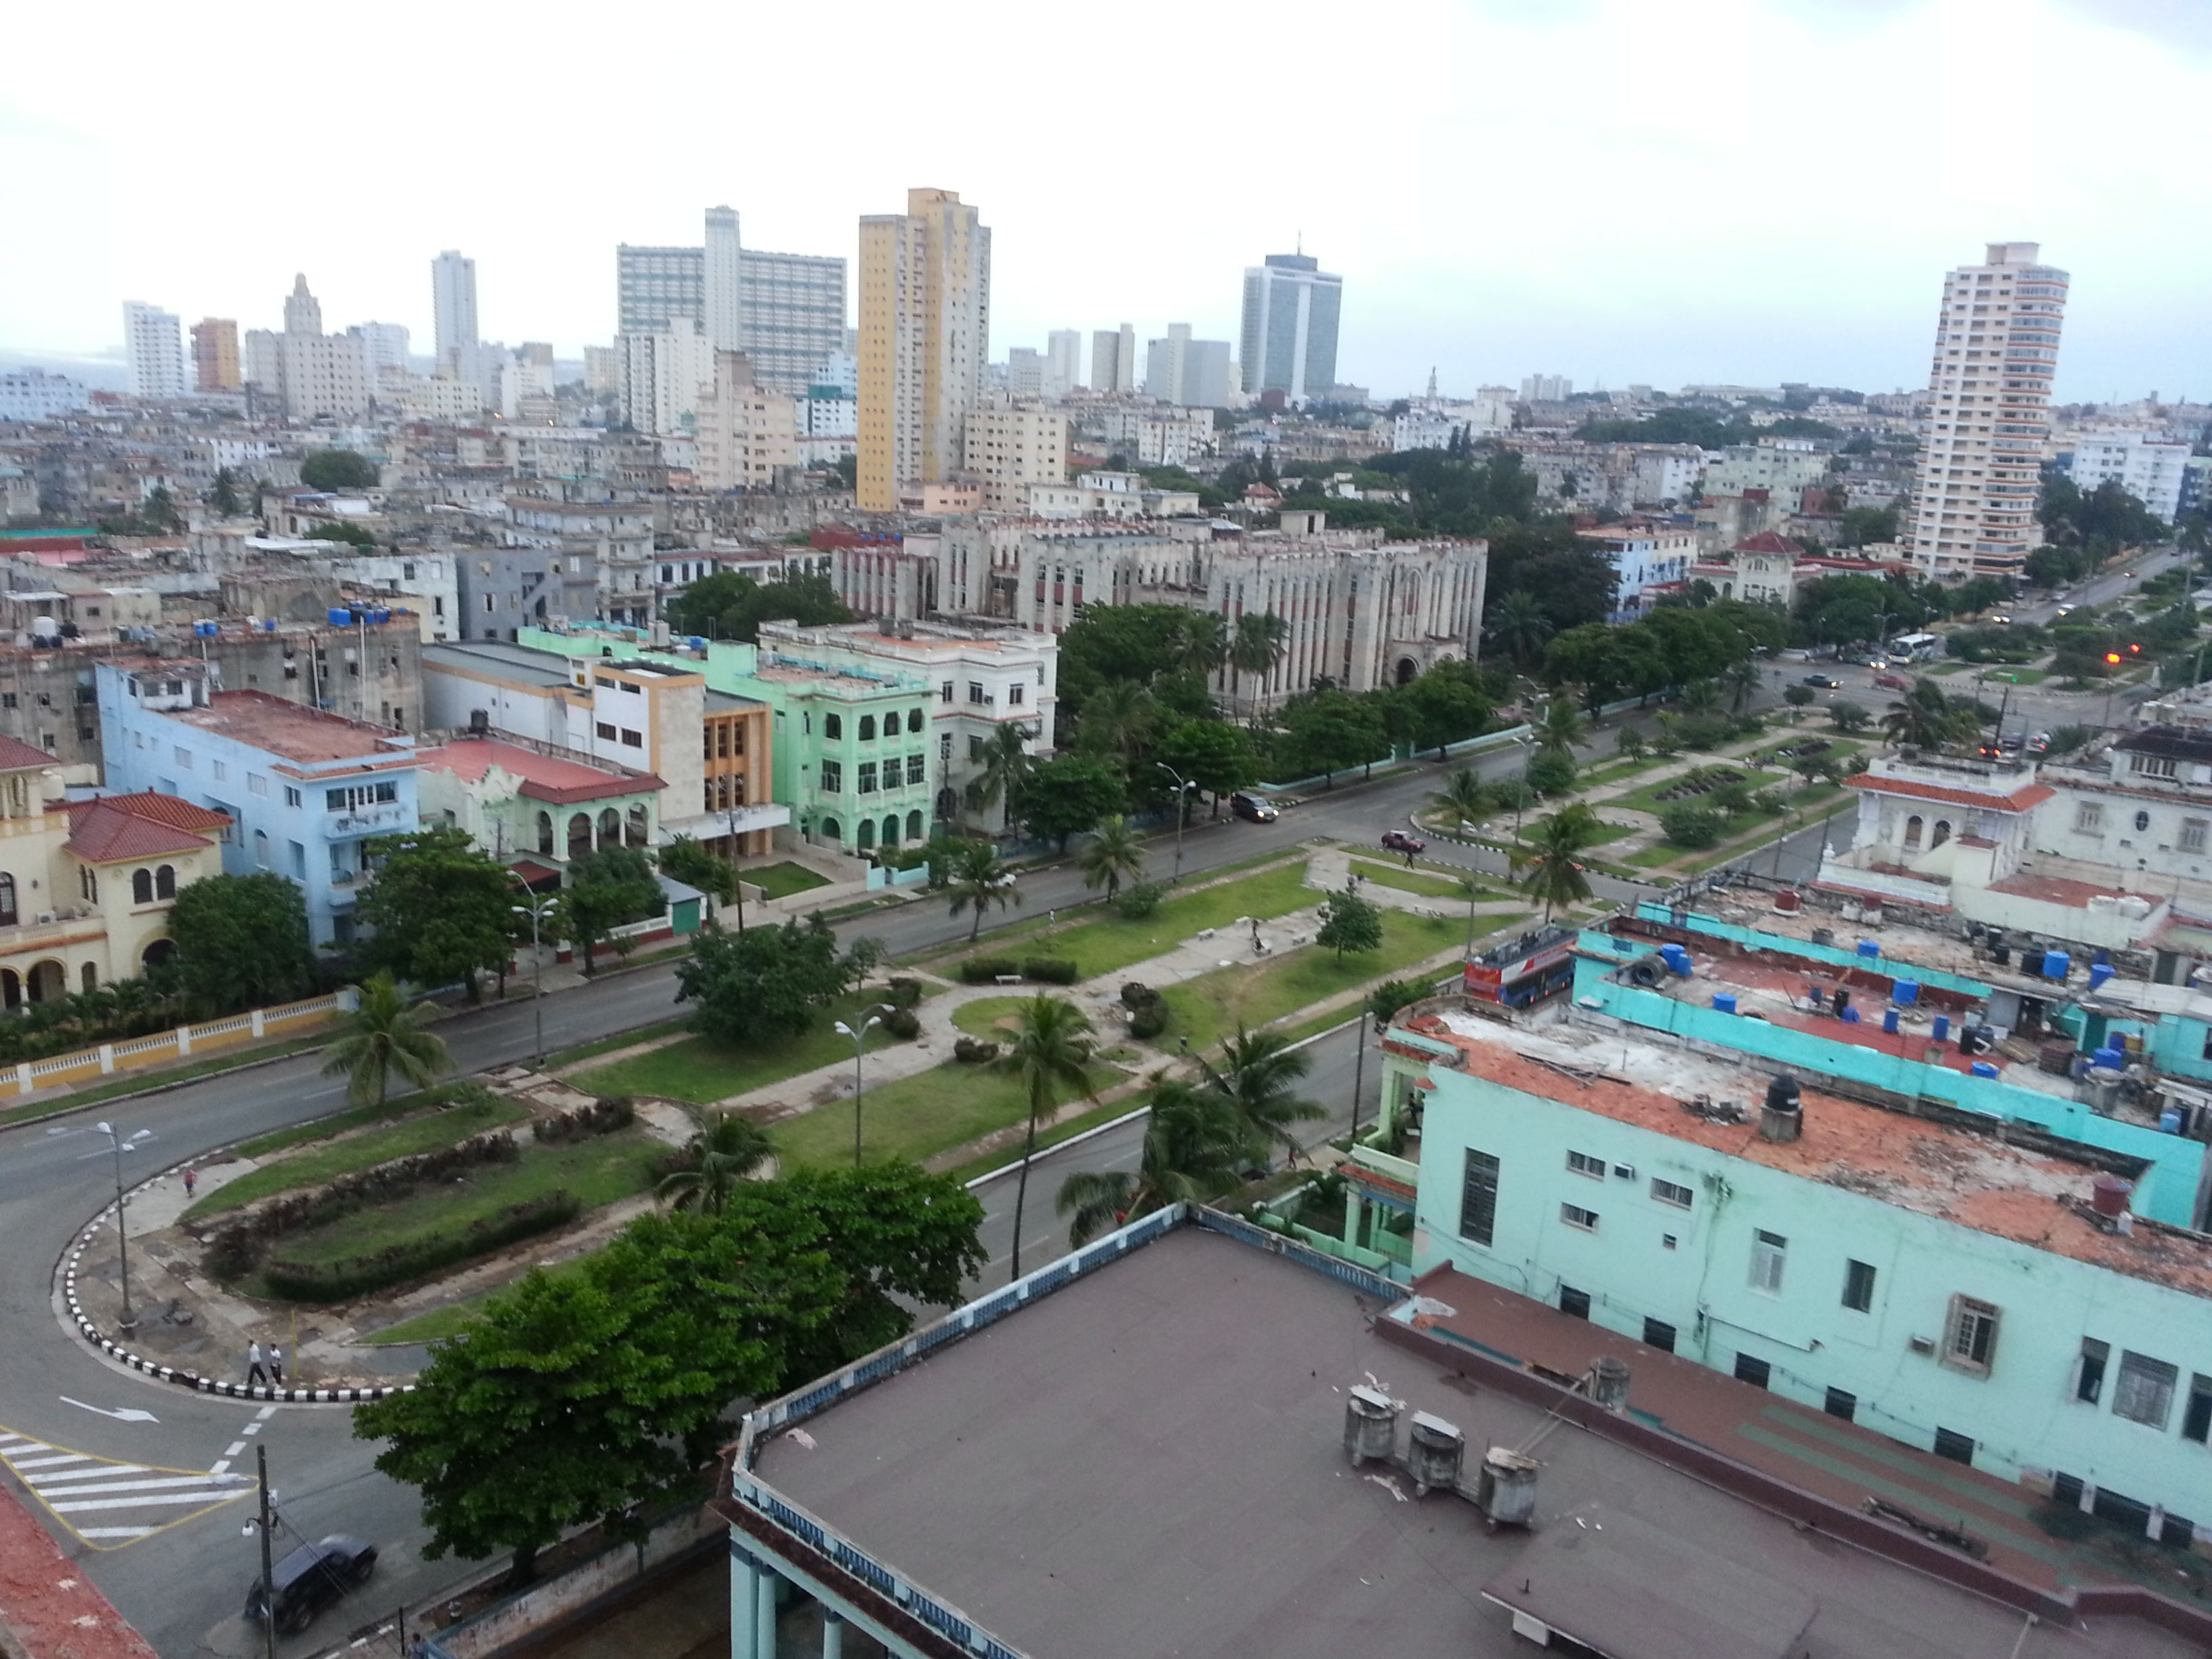 View of Havana from Hotel Presidente, Nov. 2013. Notice the lack of cars on the street. This was in the early evening. Most Cubans can't afford a car.